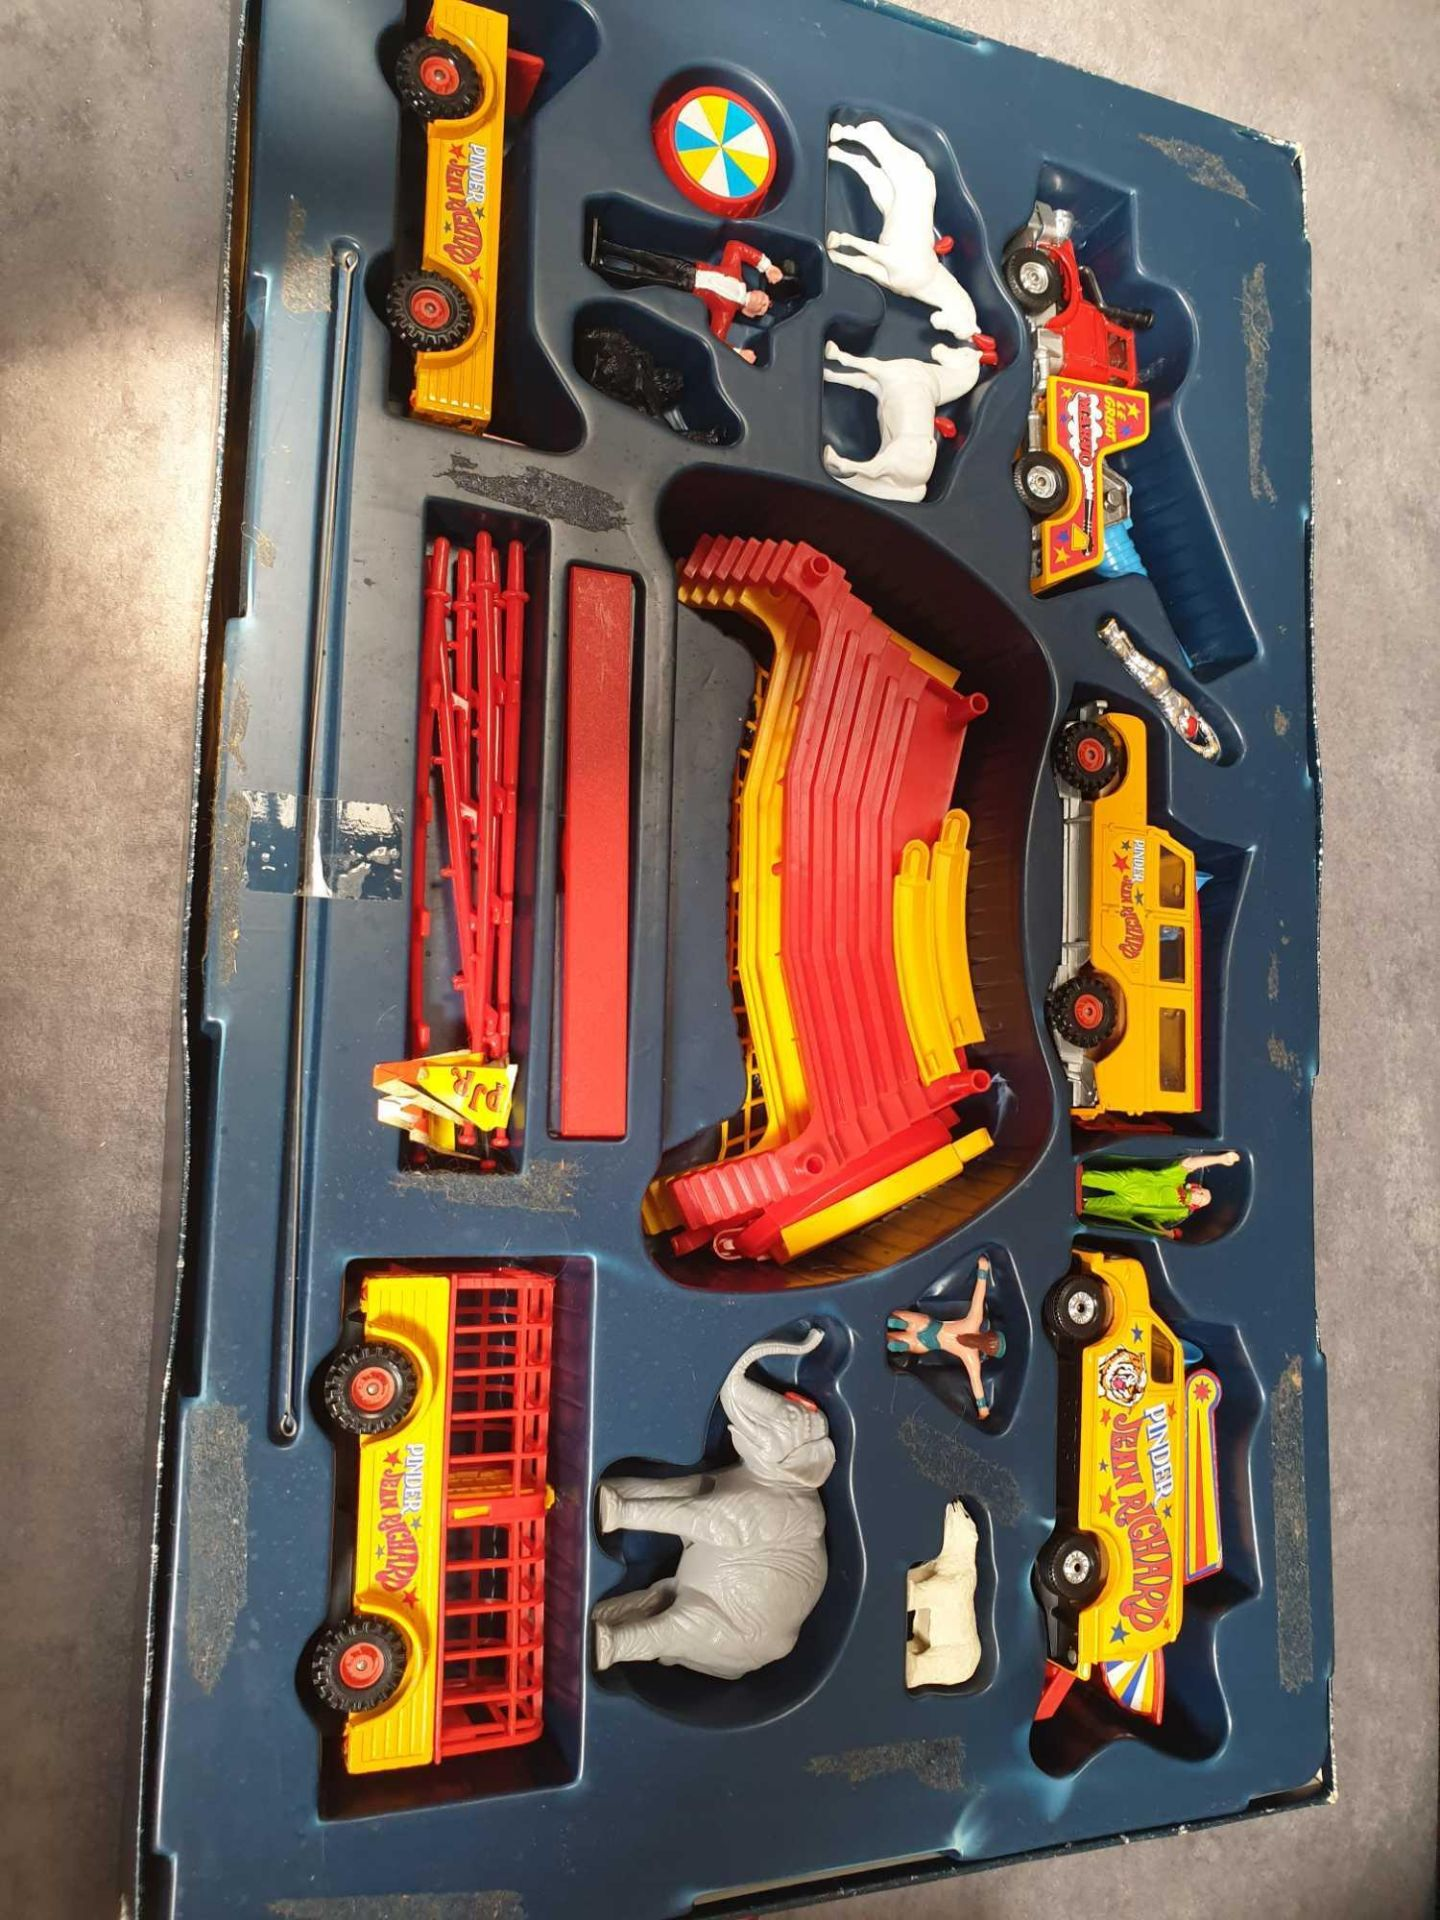 Excellent Corgi Diecast #48 Jean Richard Circus Gift Set Various Circus Vehicles And Accessories. - Image 2 of 3